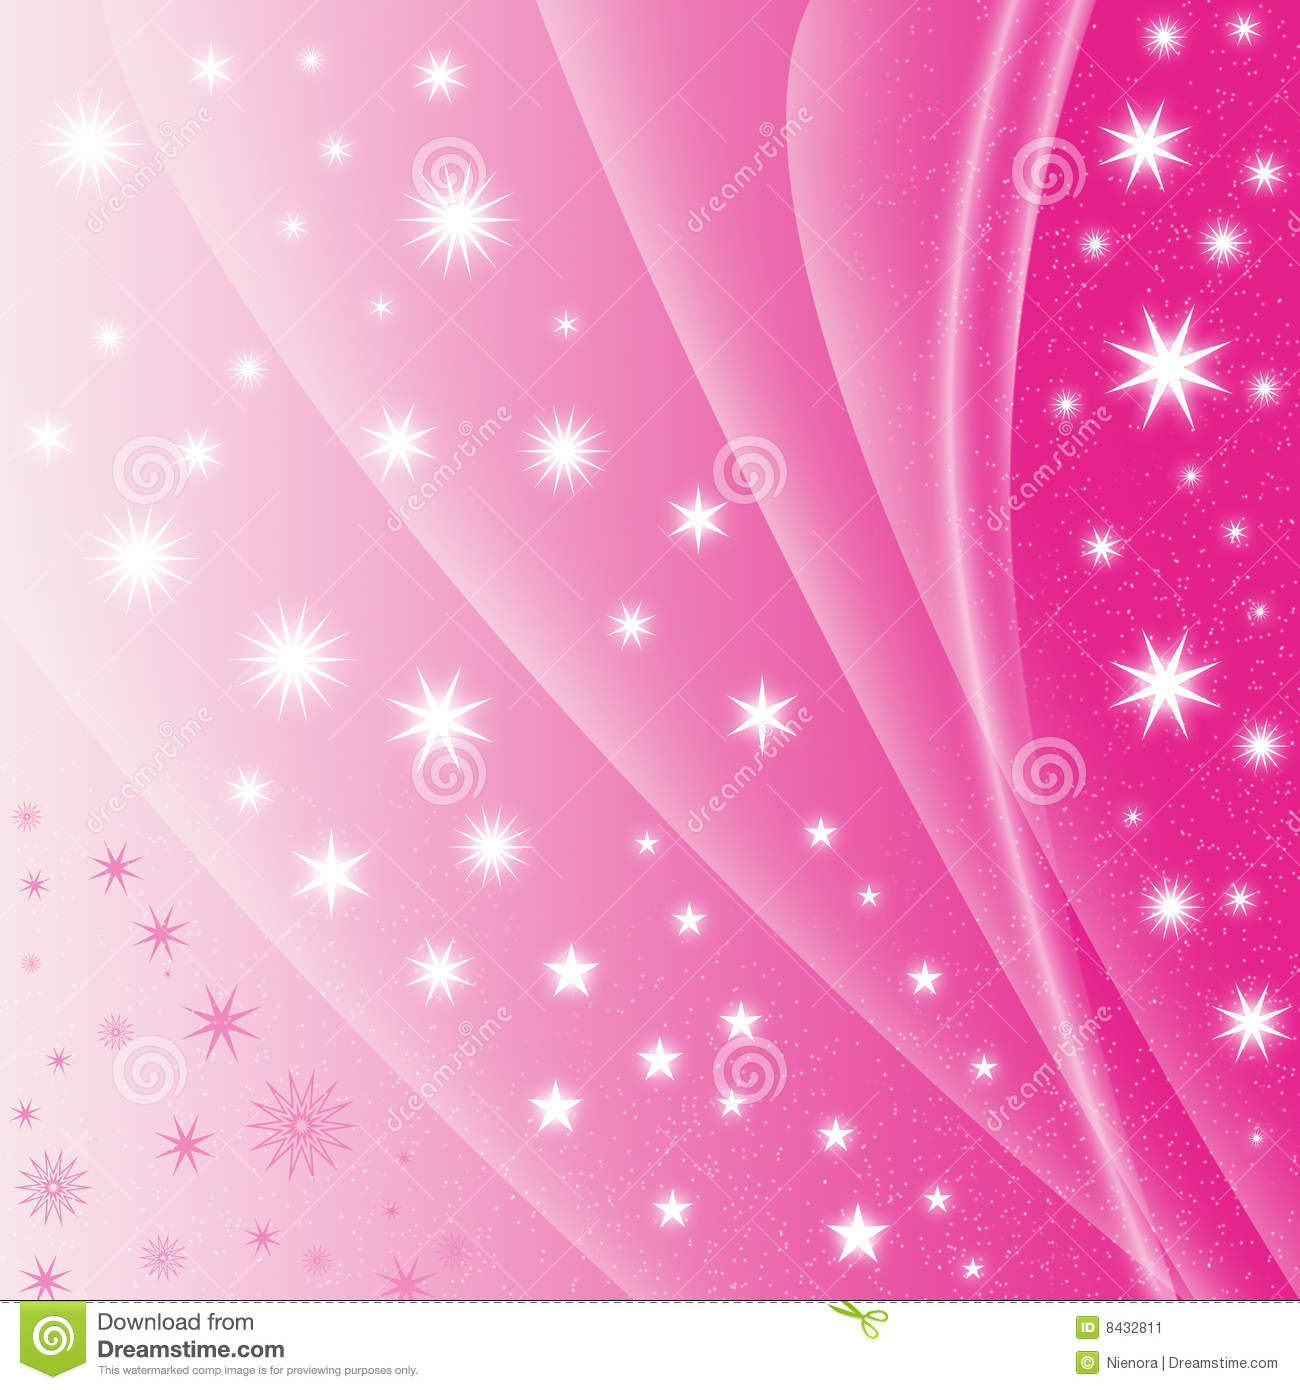 Purple Falling Circles Wallpaper Abstract Pink Star Background Stock Illustration